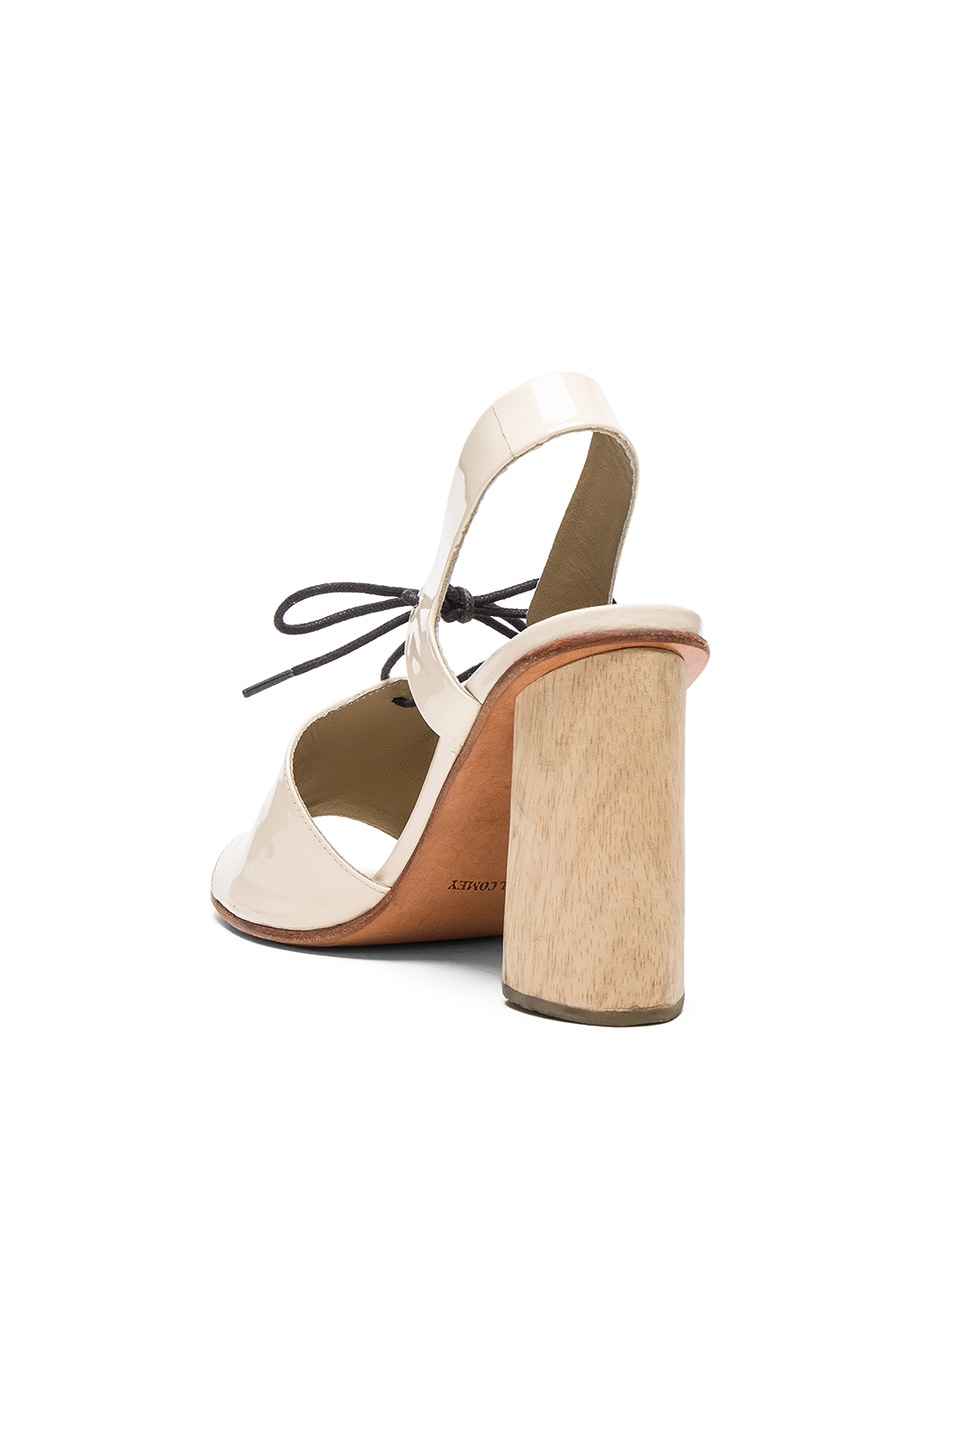 Image 3 of Rachel Comey Patent Leather Melrose Heels in Creamsicle Patent